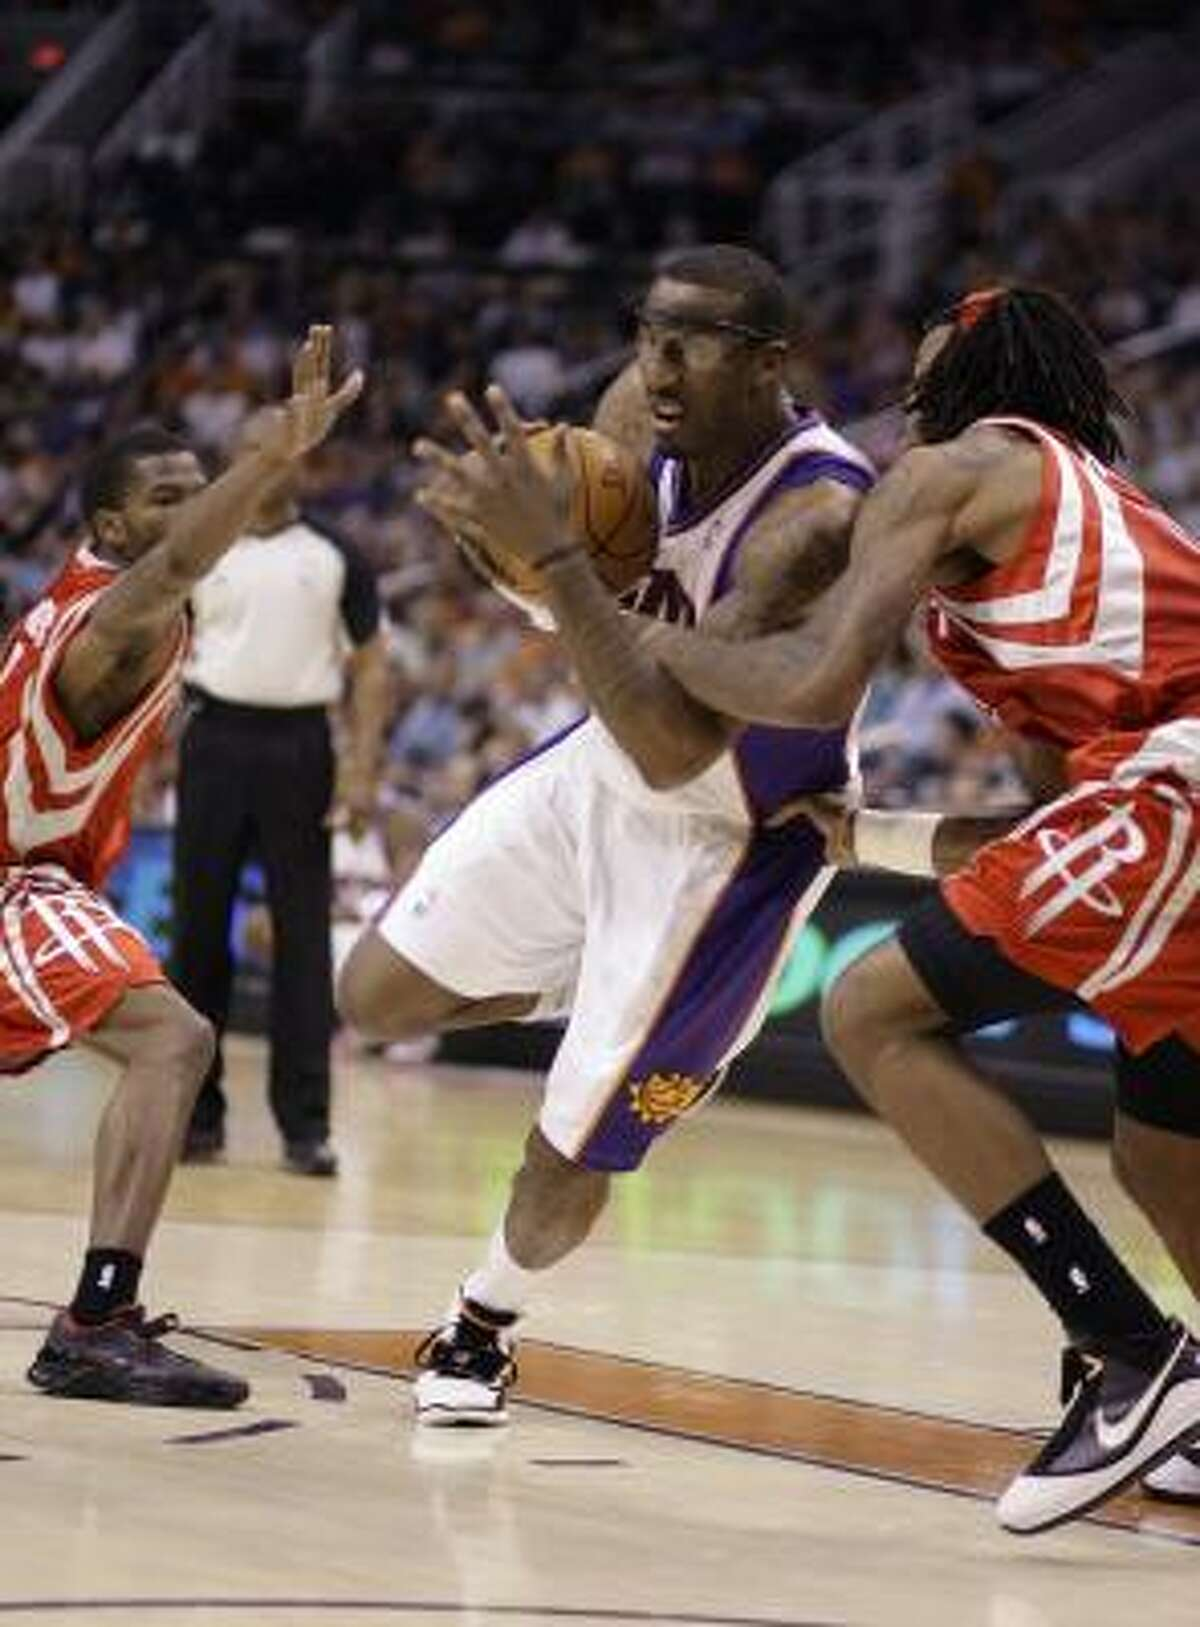 Phoenix Suns forward Amare Stoudemire, center, drives to the basket between Rockets guard Aaron Brooks, left, and forward Jordan Hill.